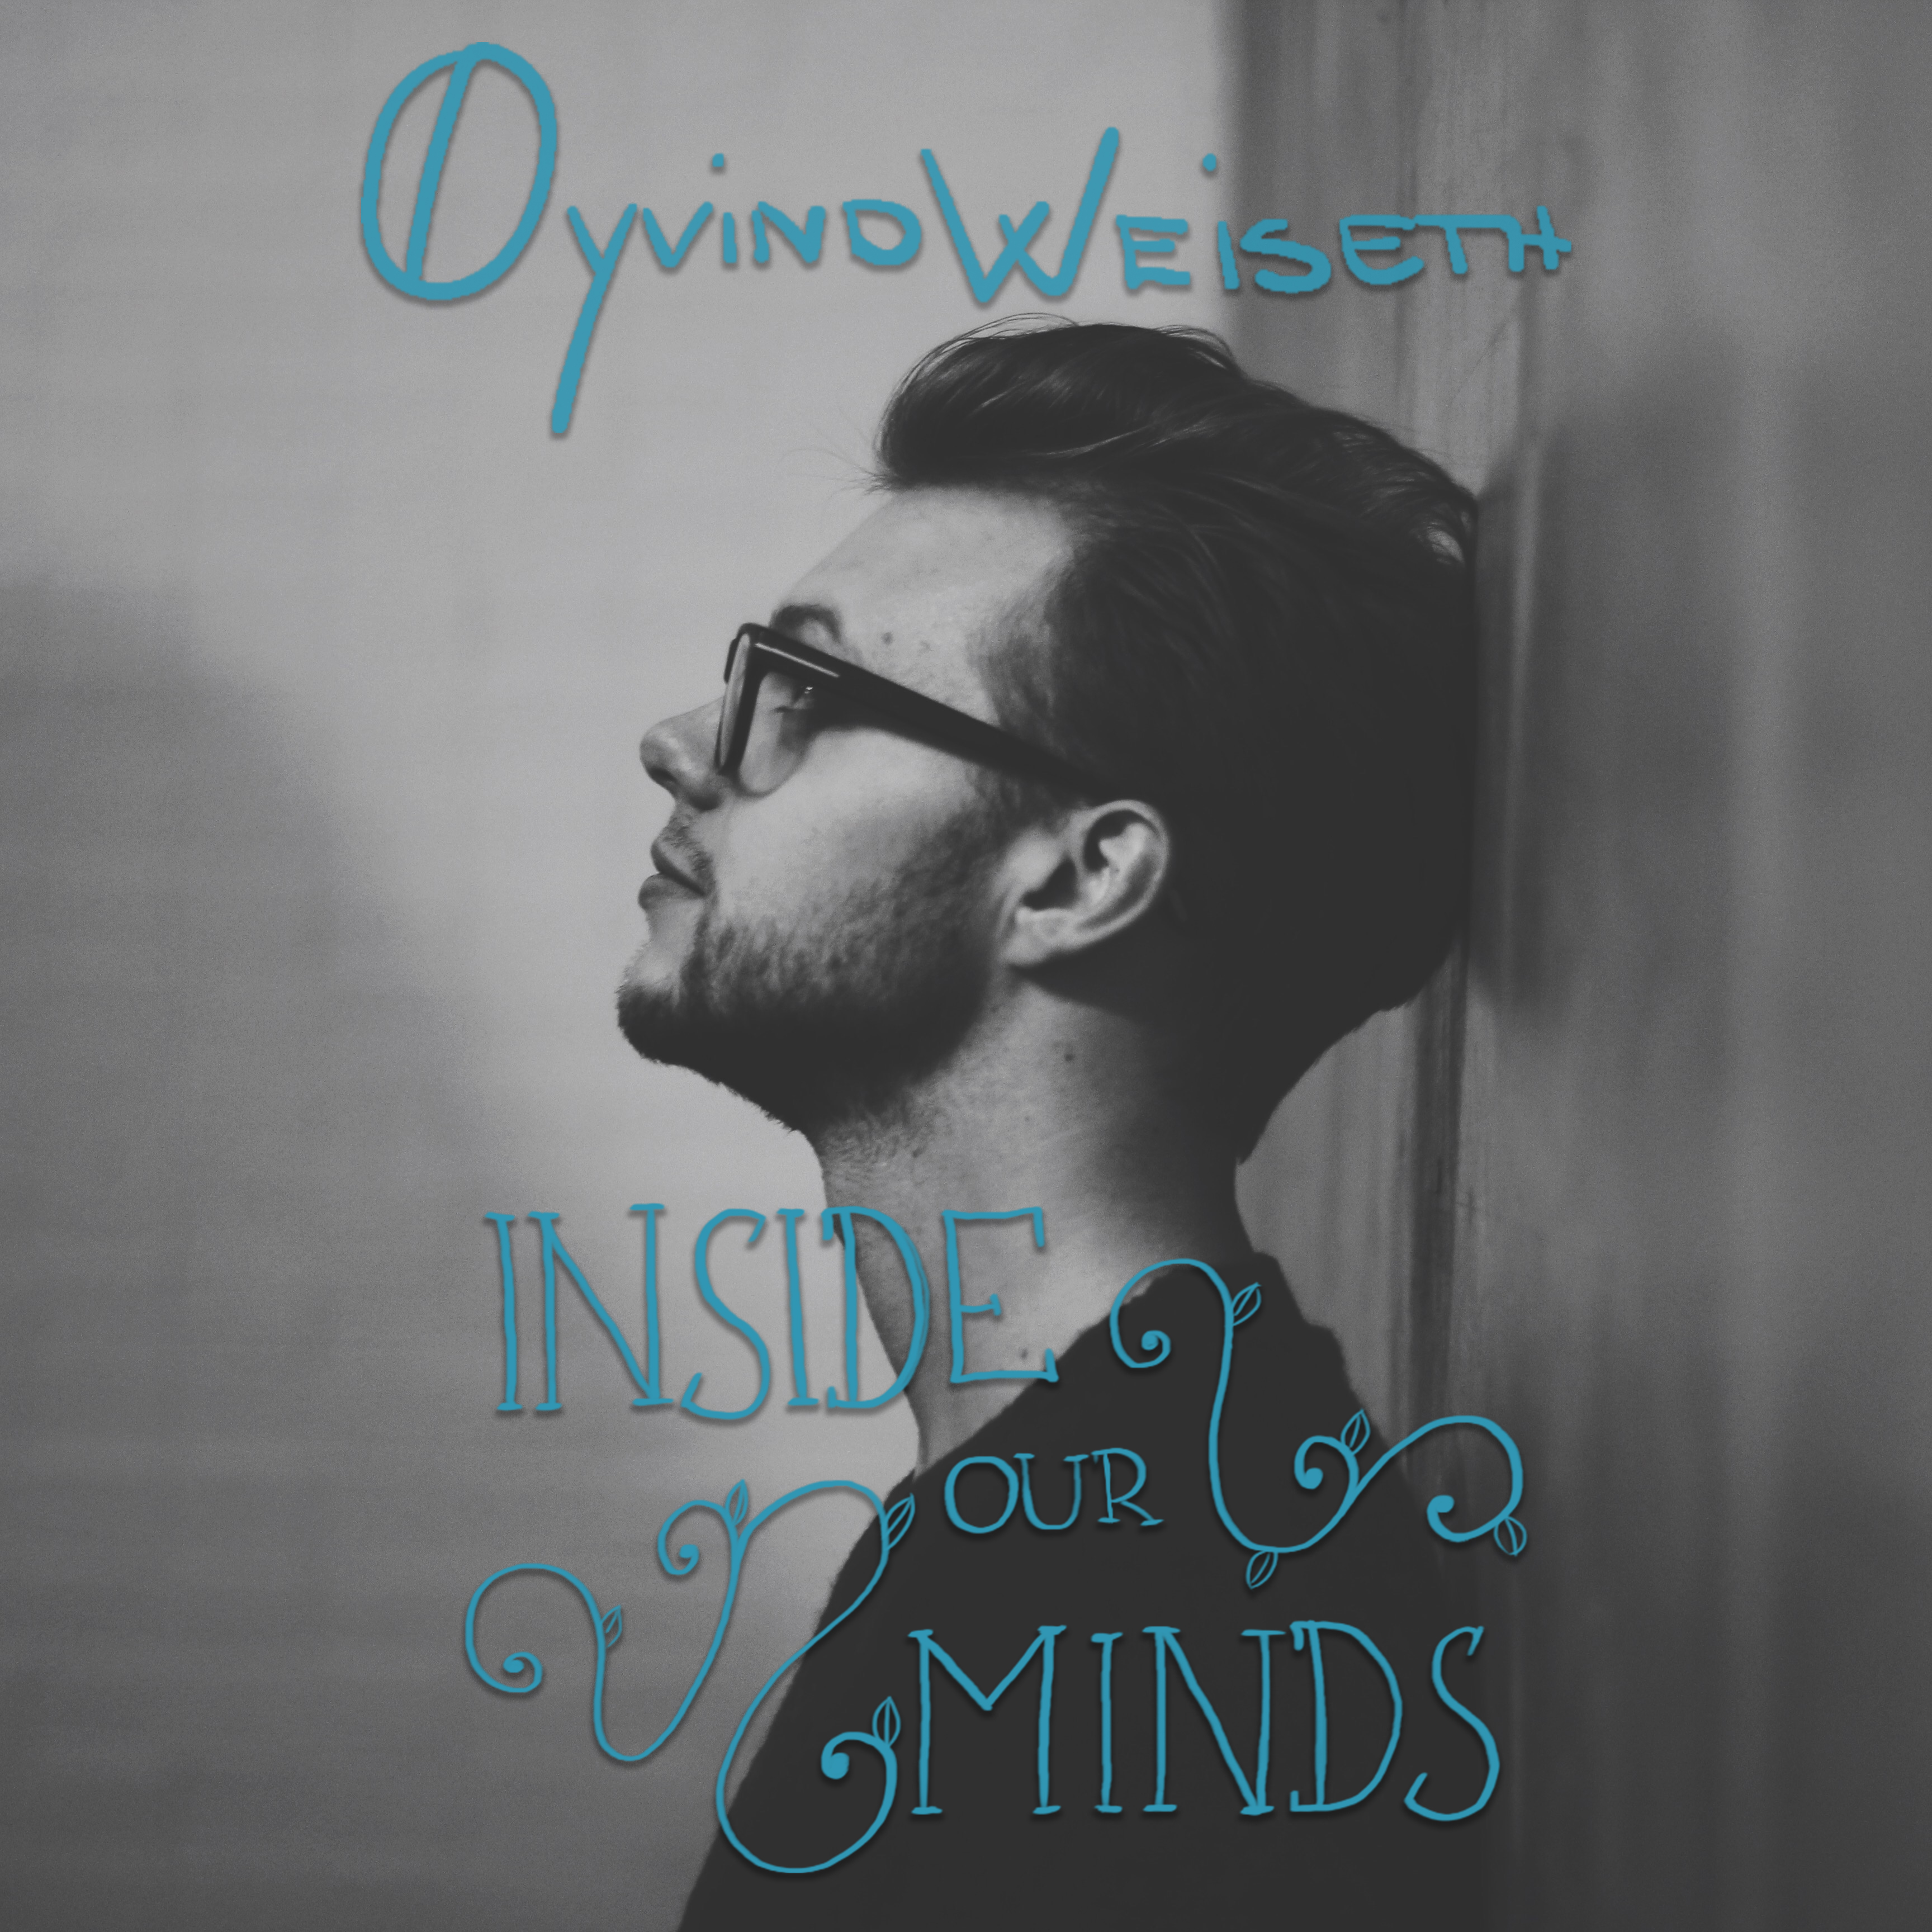 %c3%98yvind weiseth   inside our minds